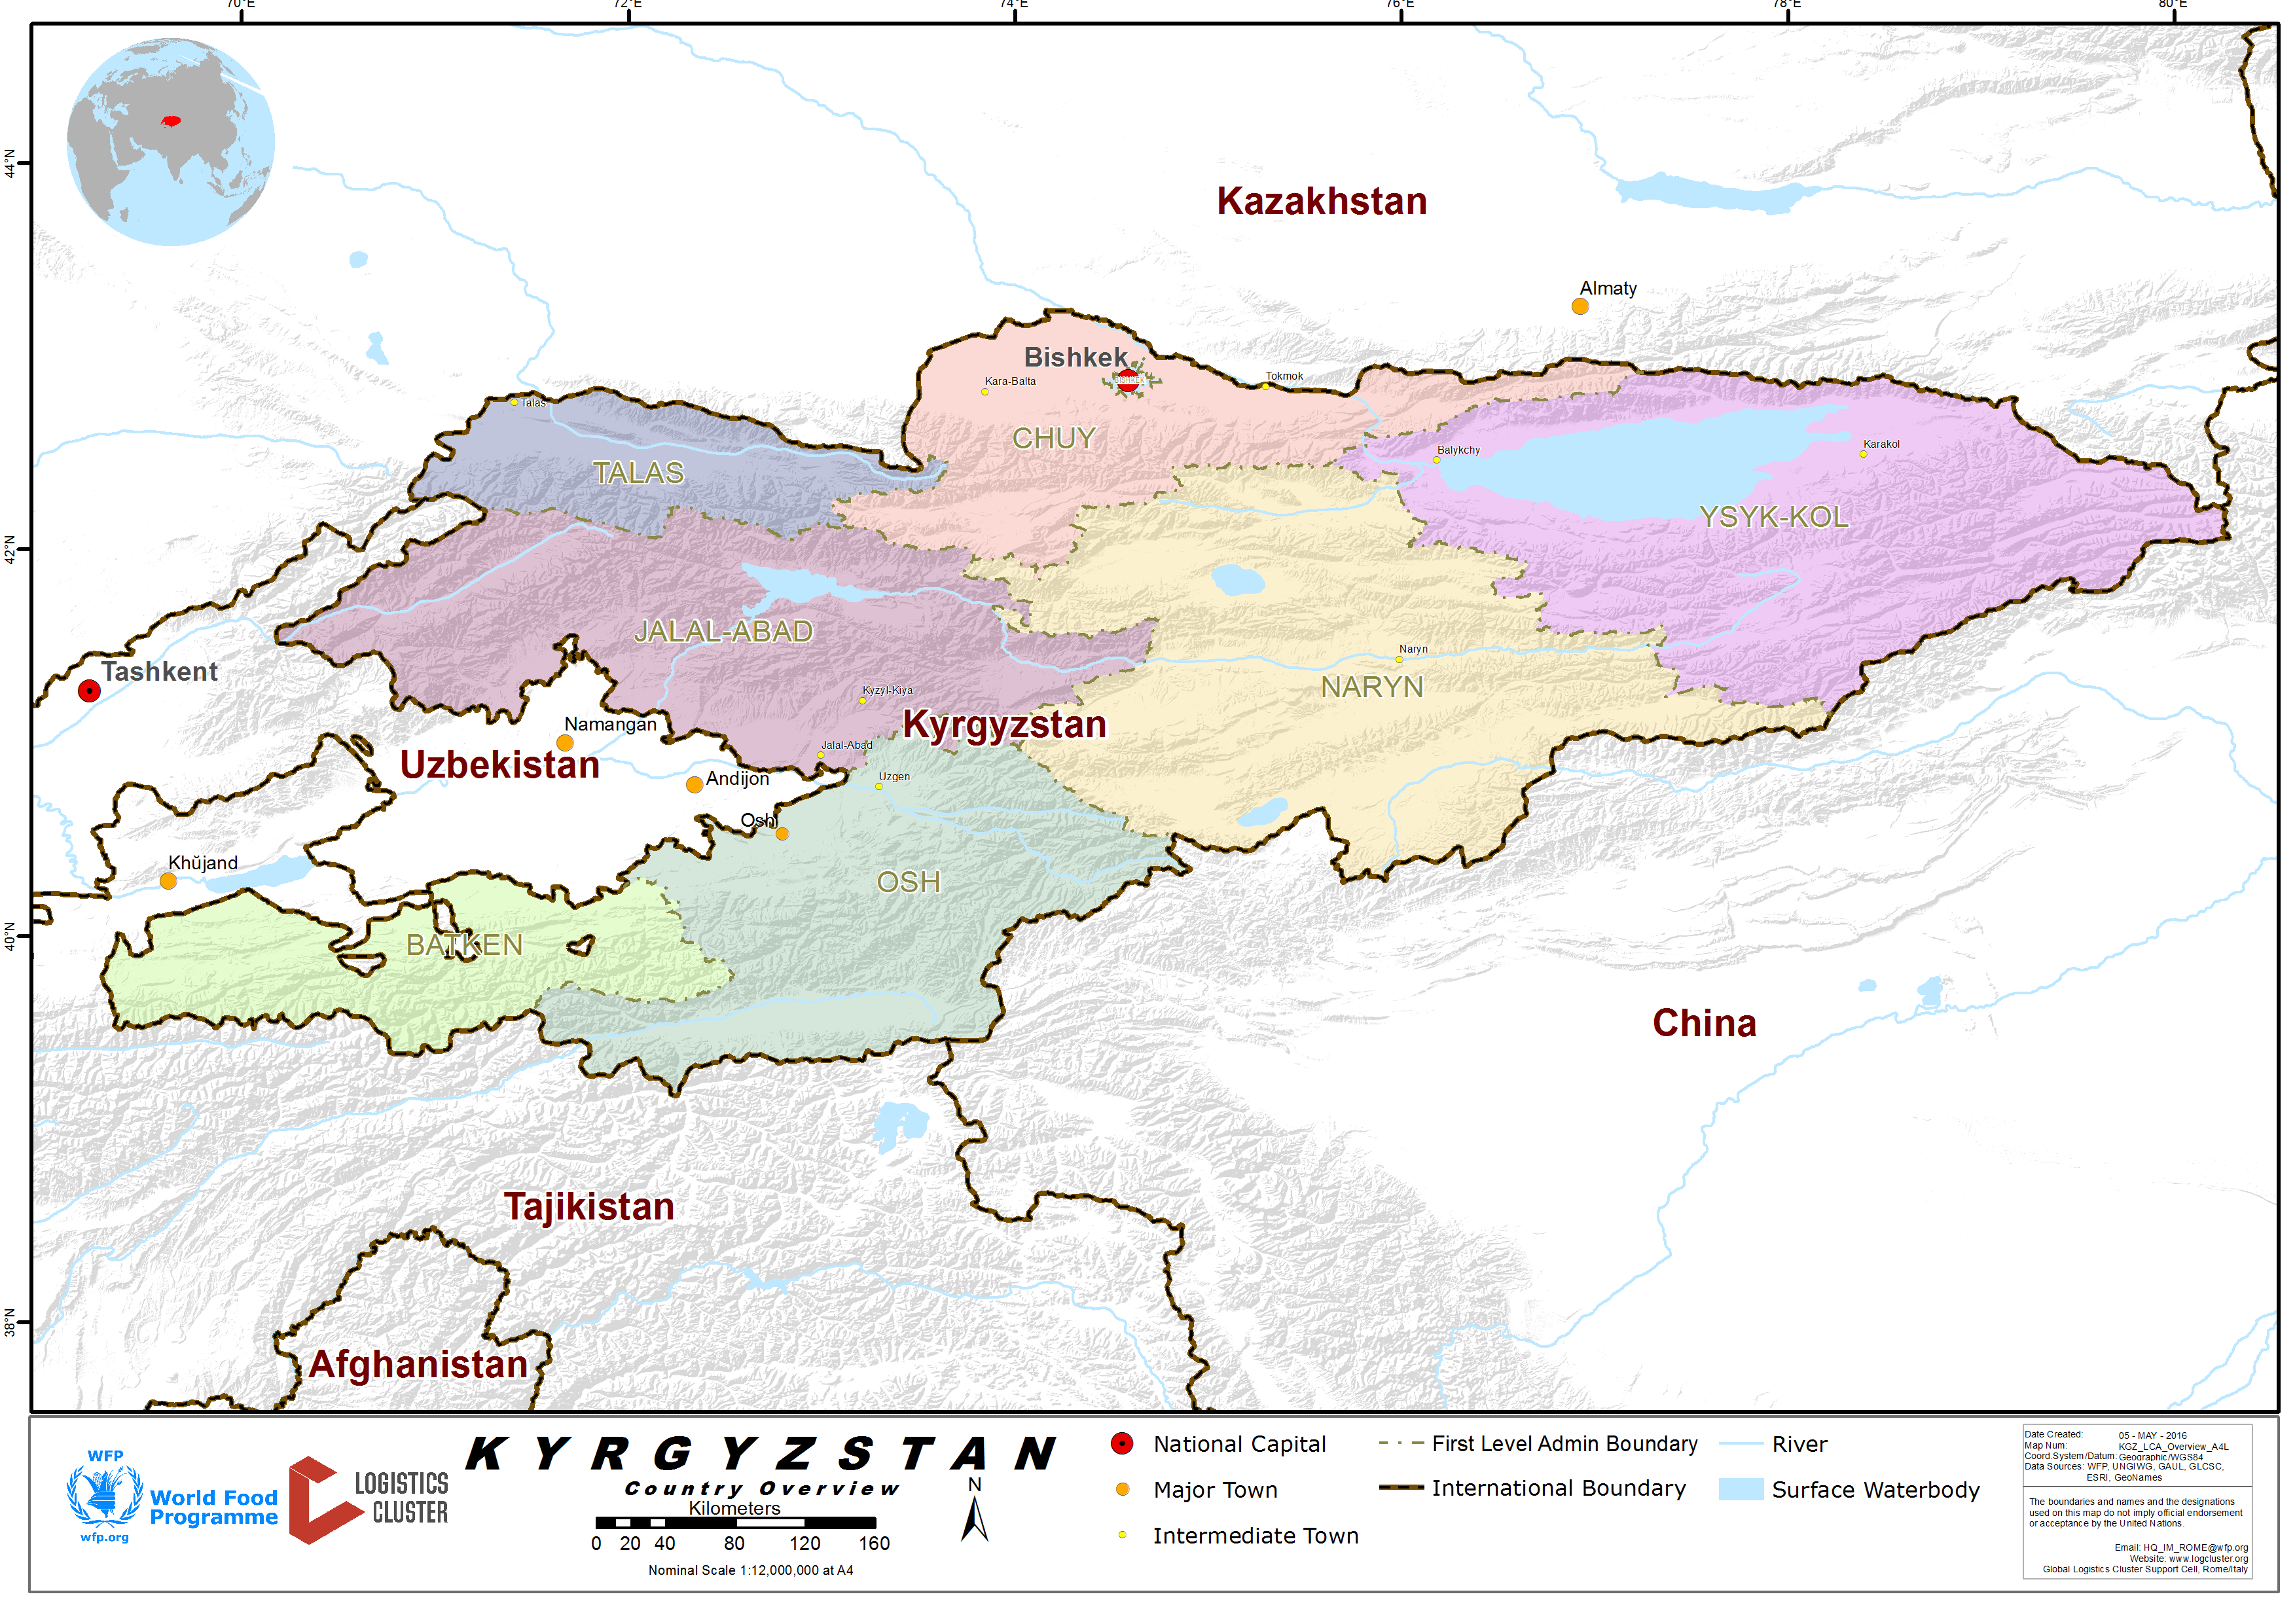 1 kyrgyzstan country profile logistics capacity assessment kyrgyzstan country map gumiabroncs Choice Image